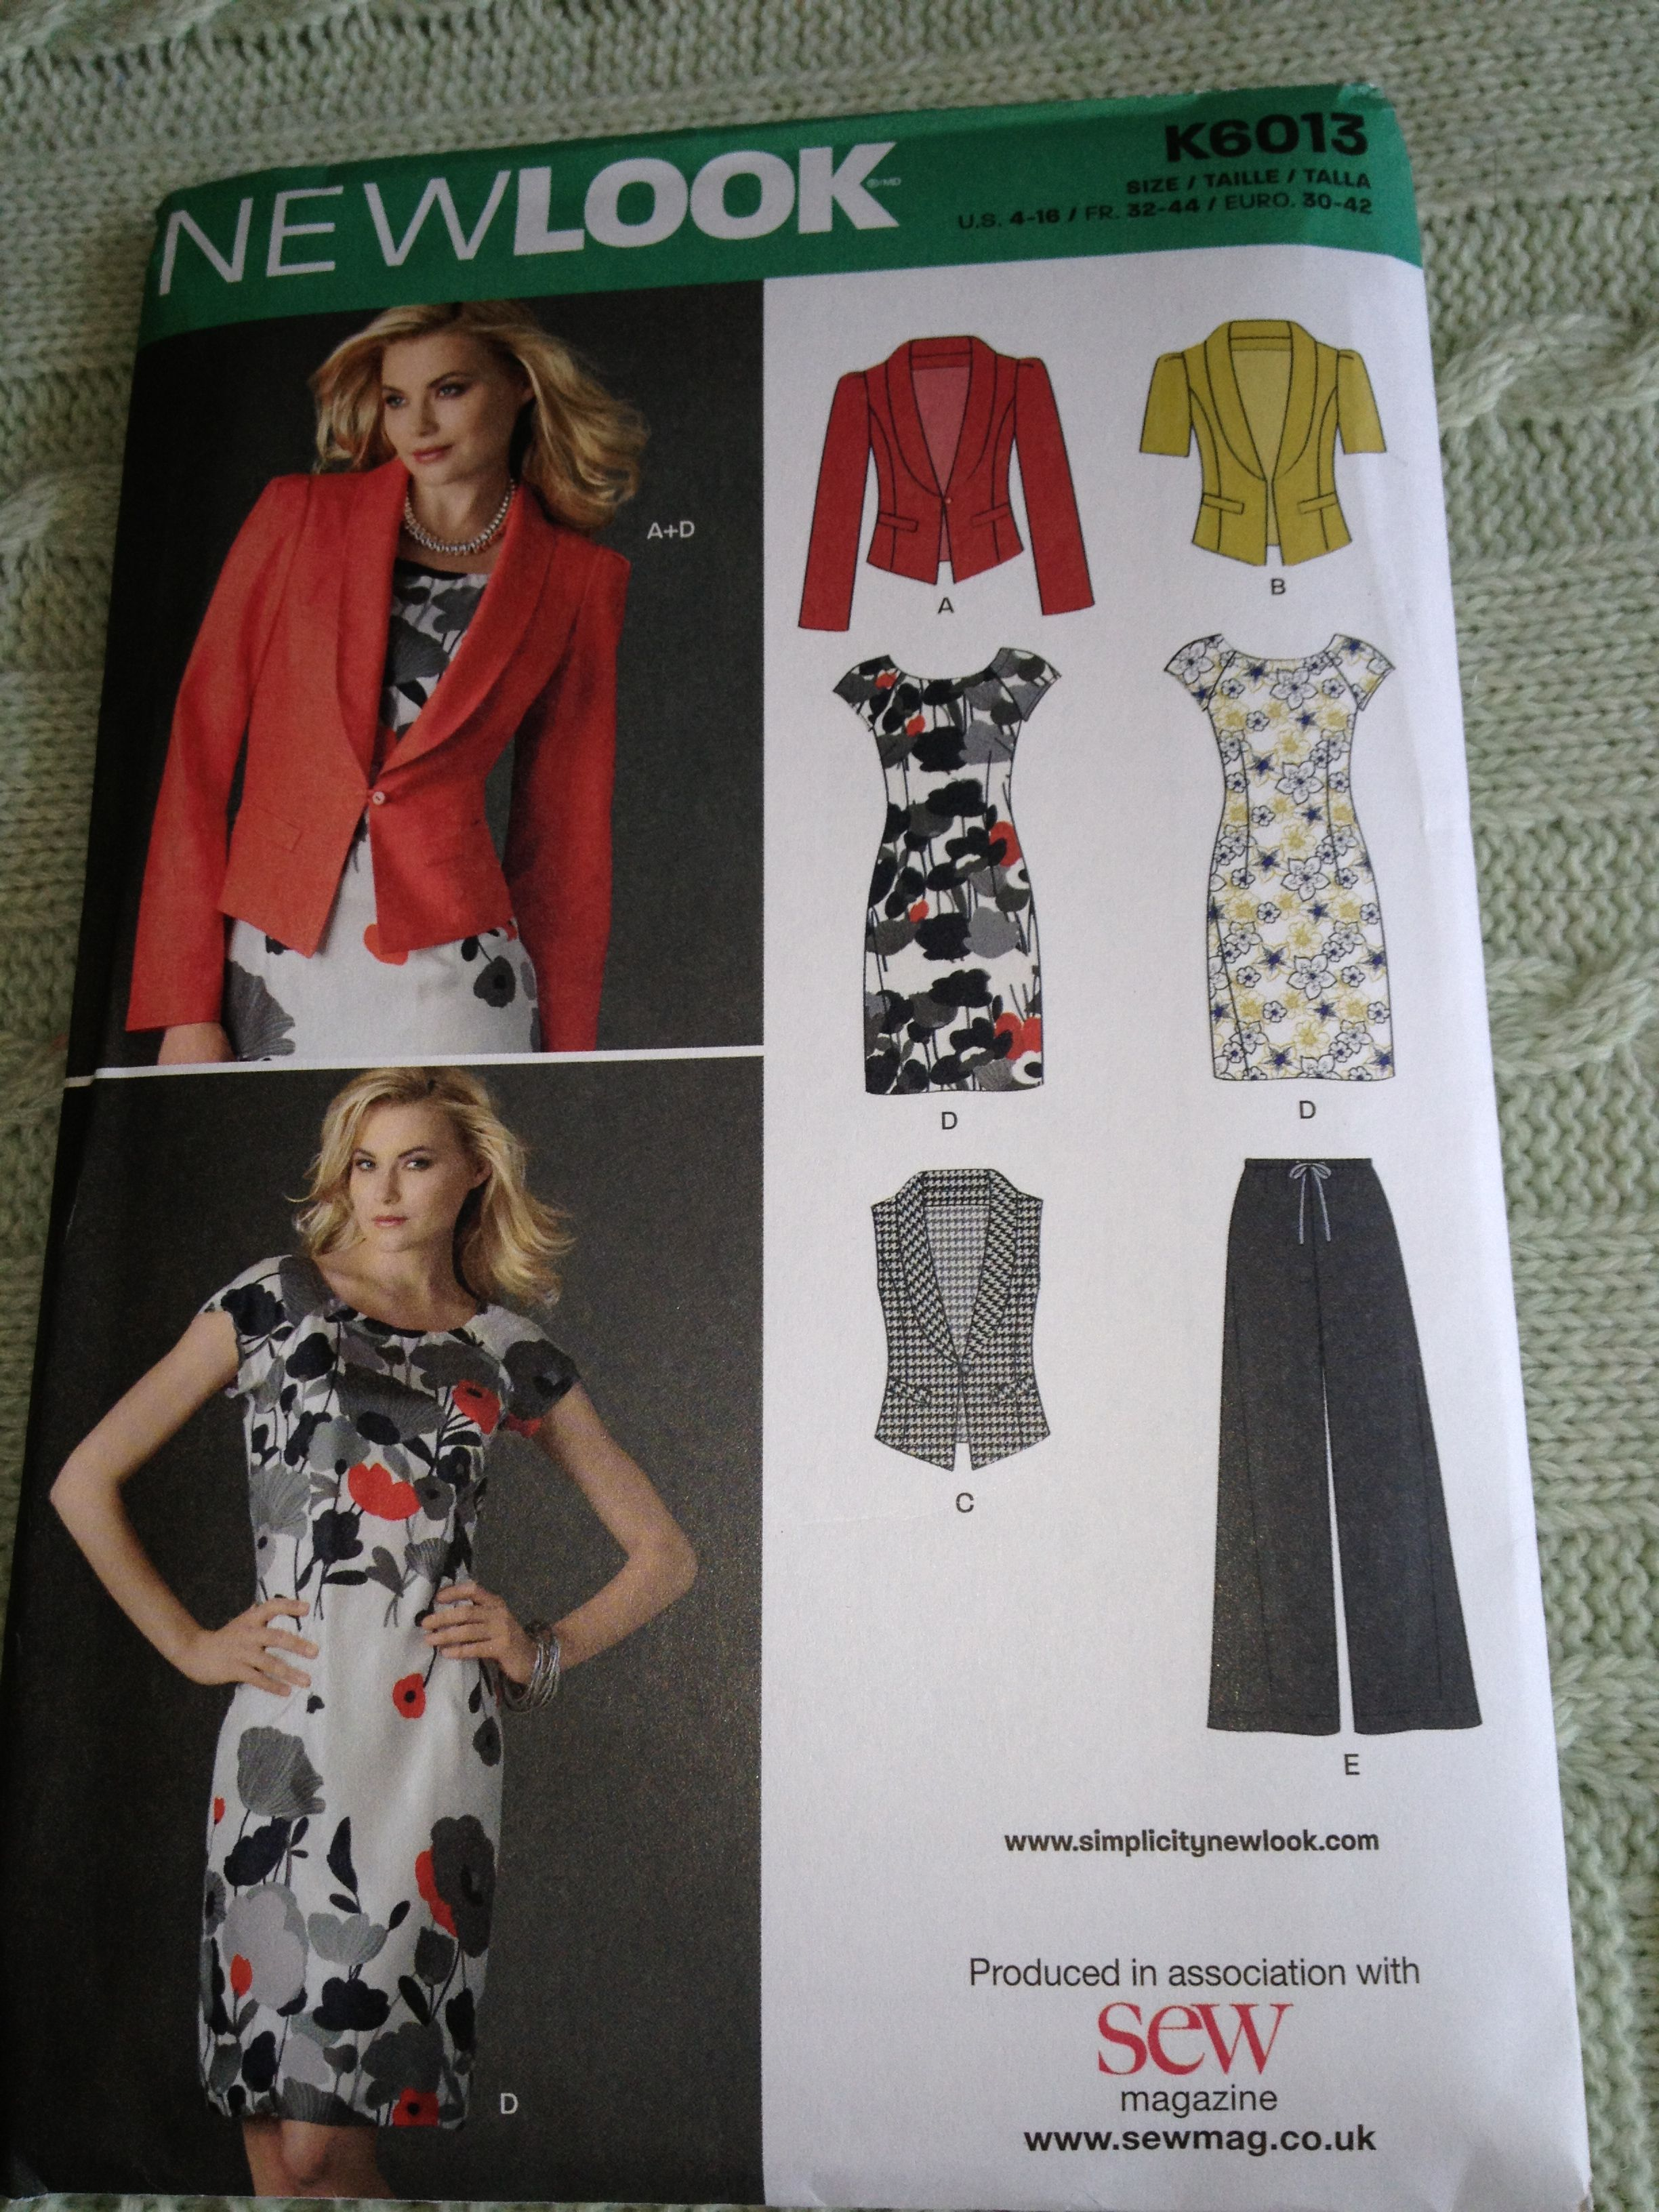 New look dress and jacket pattern No K6013